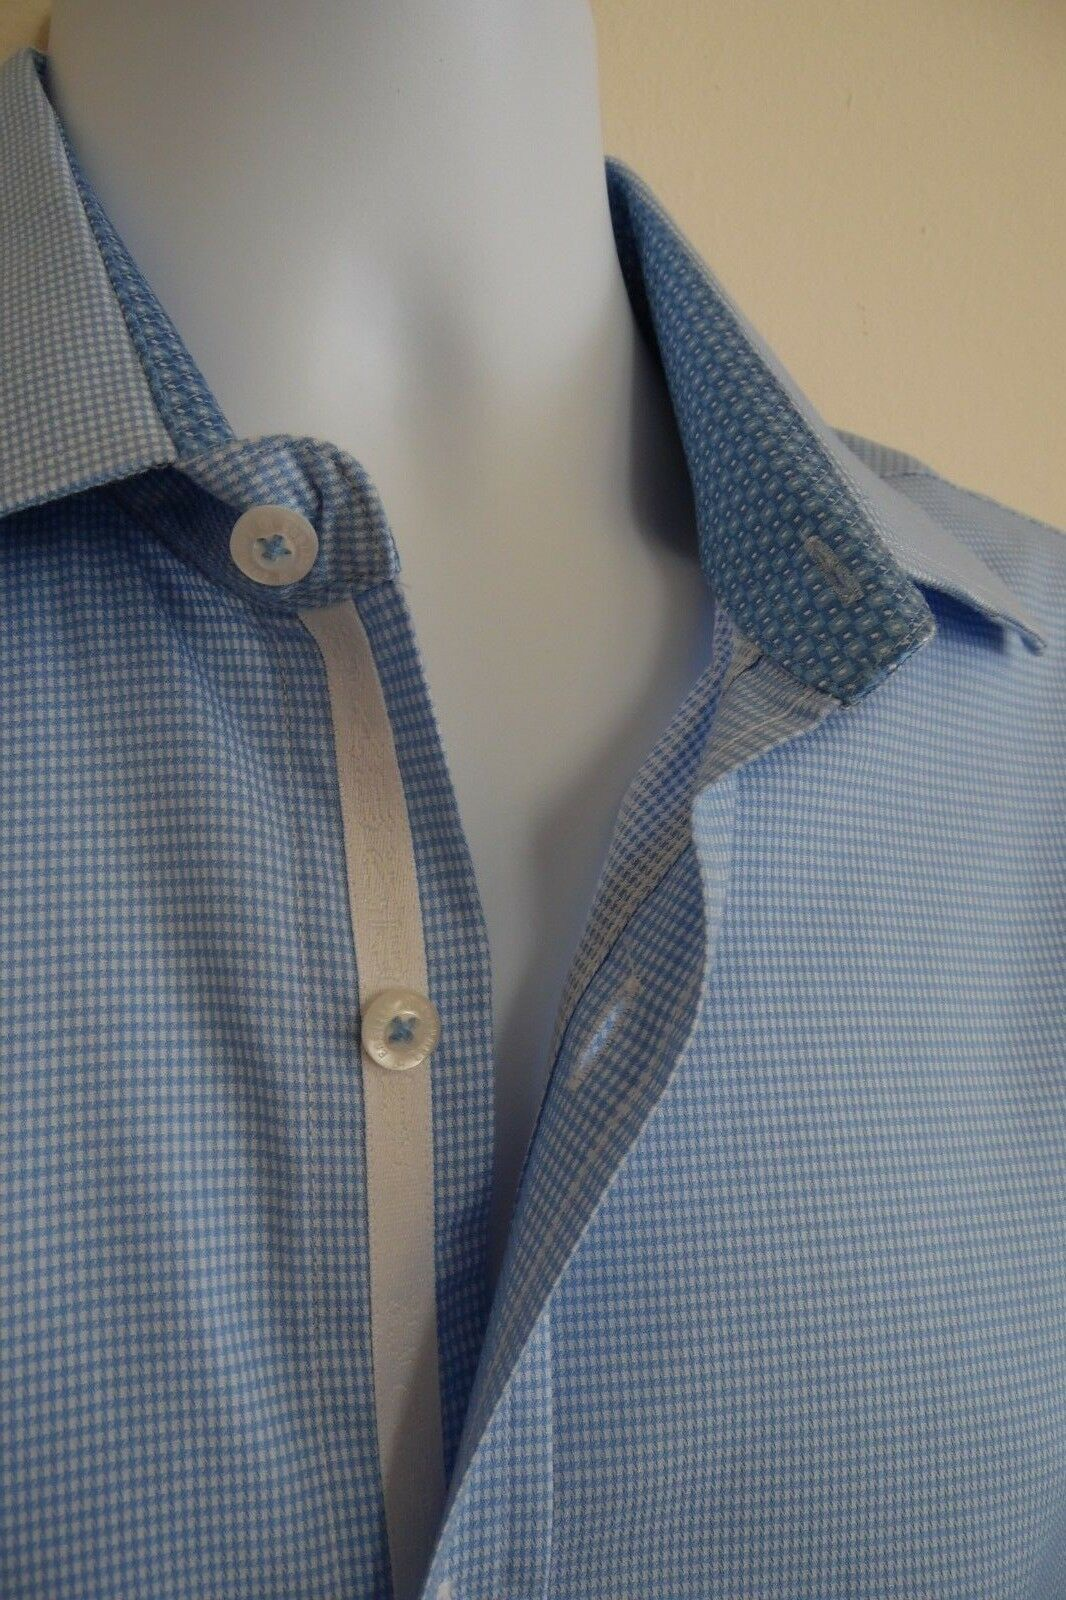 Men's ENGLISH LAUNDRY Long Sleeve Button Down EMBROIDERED Shirt  Large   EUC